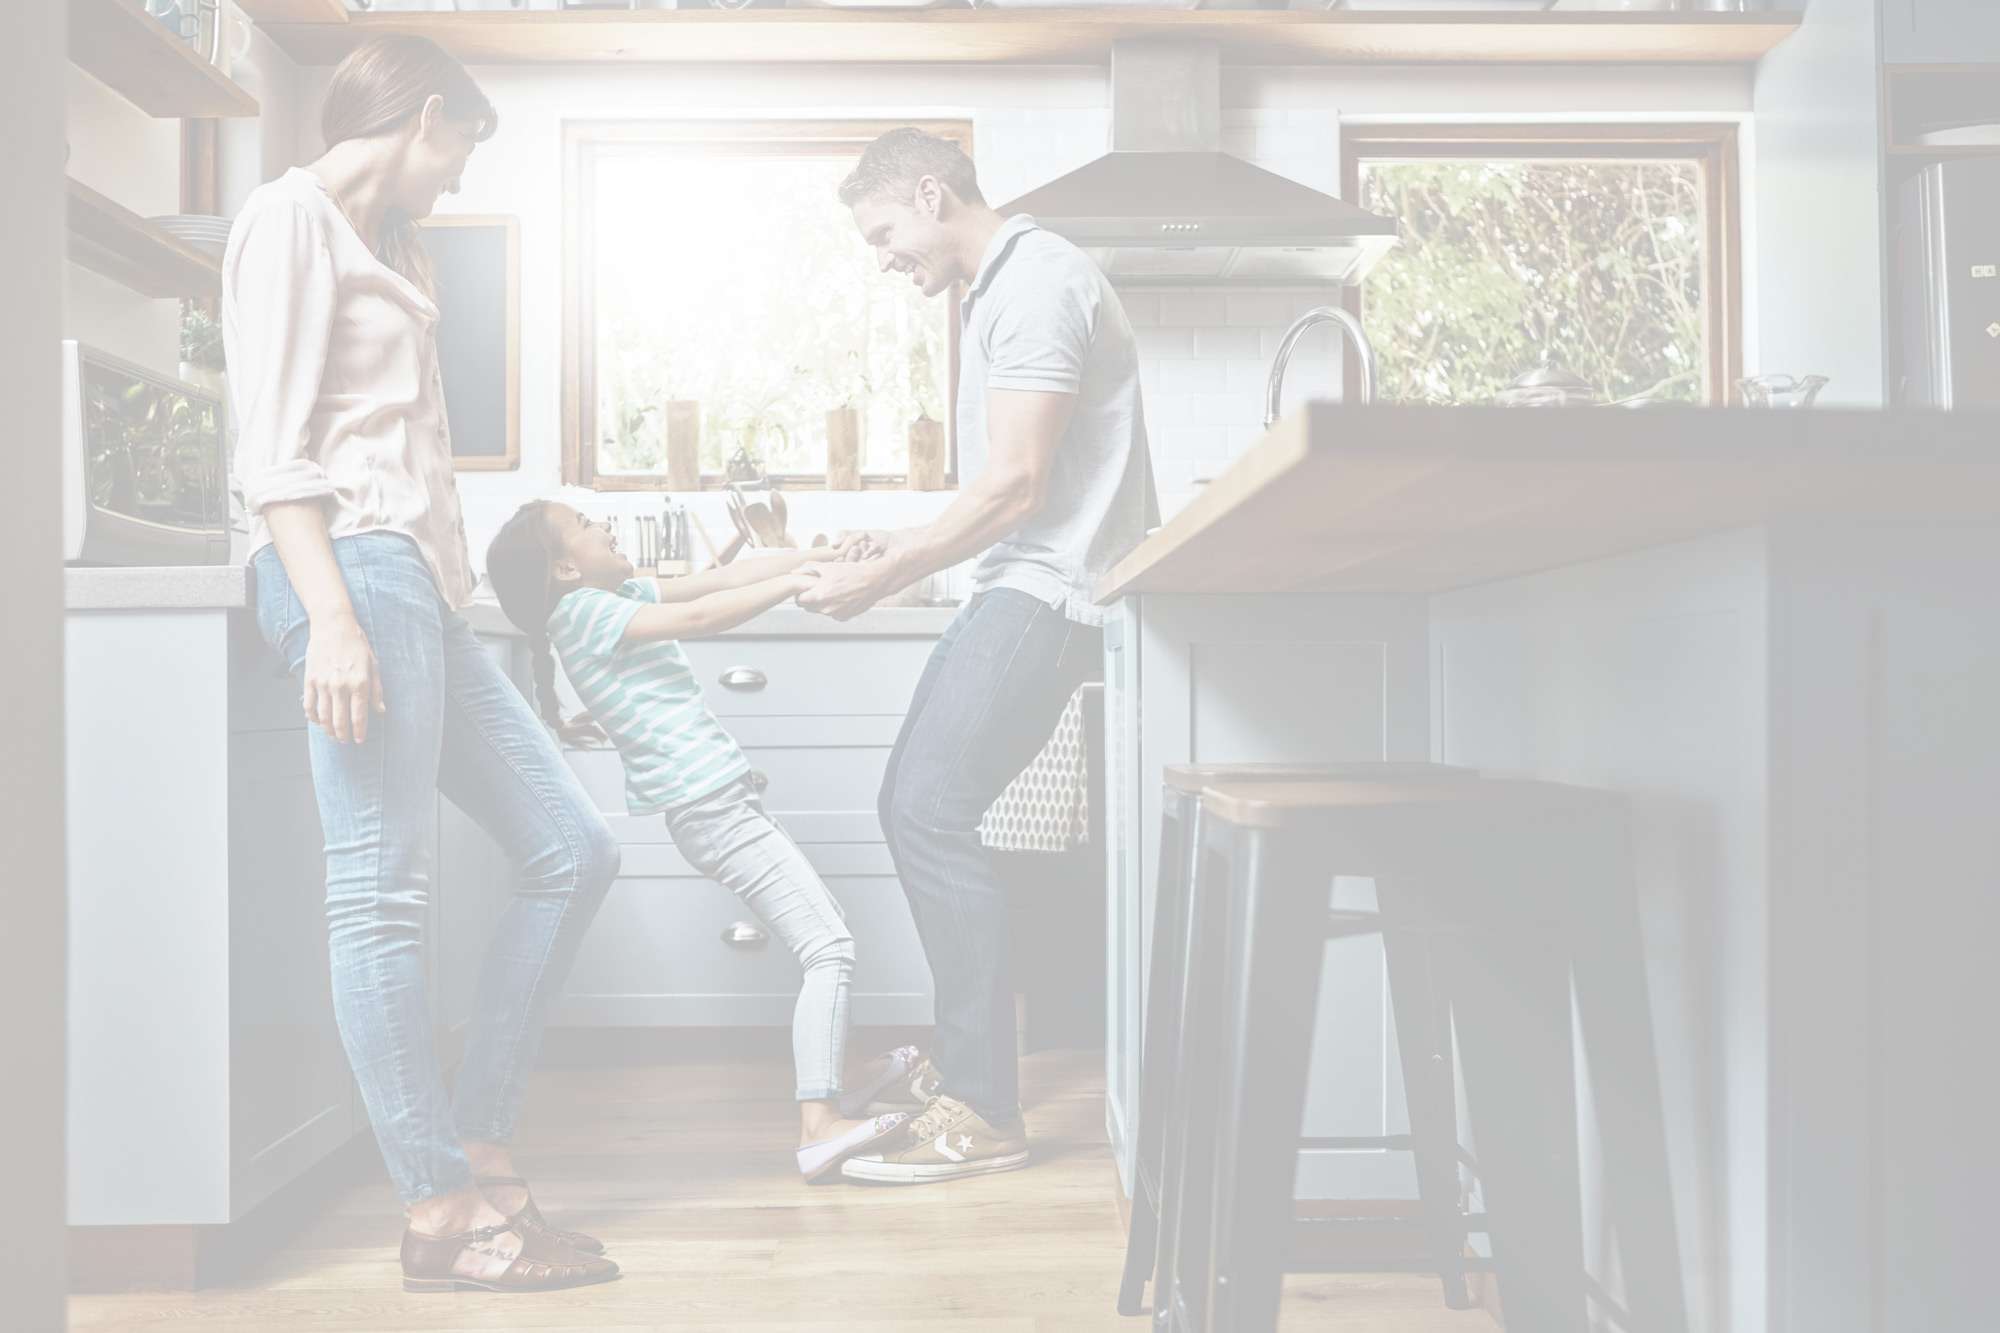 photo of family standing in kitchen talking